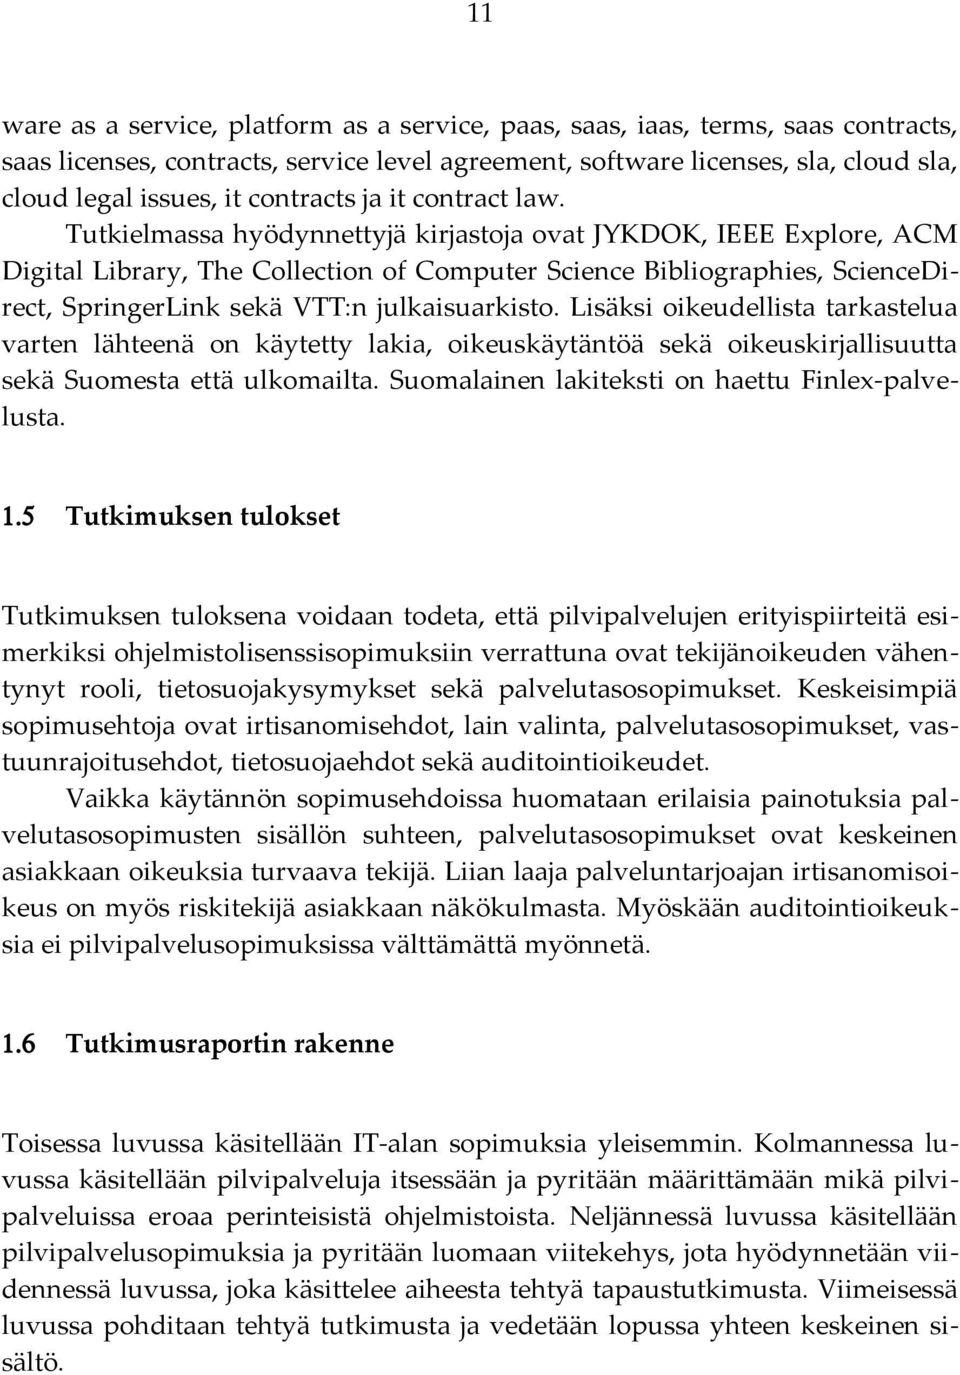 Tutkielmassa hyödynnettyjä kirjastoja ovat JYKDOK, IEEE Explore, ACM Digital Library, The Collection of Computer Science Bibliographies, ScienceDirect, SpringerLink sekä VTT:n julkaisuarkisto.